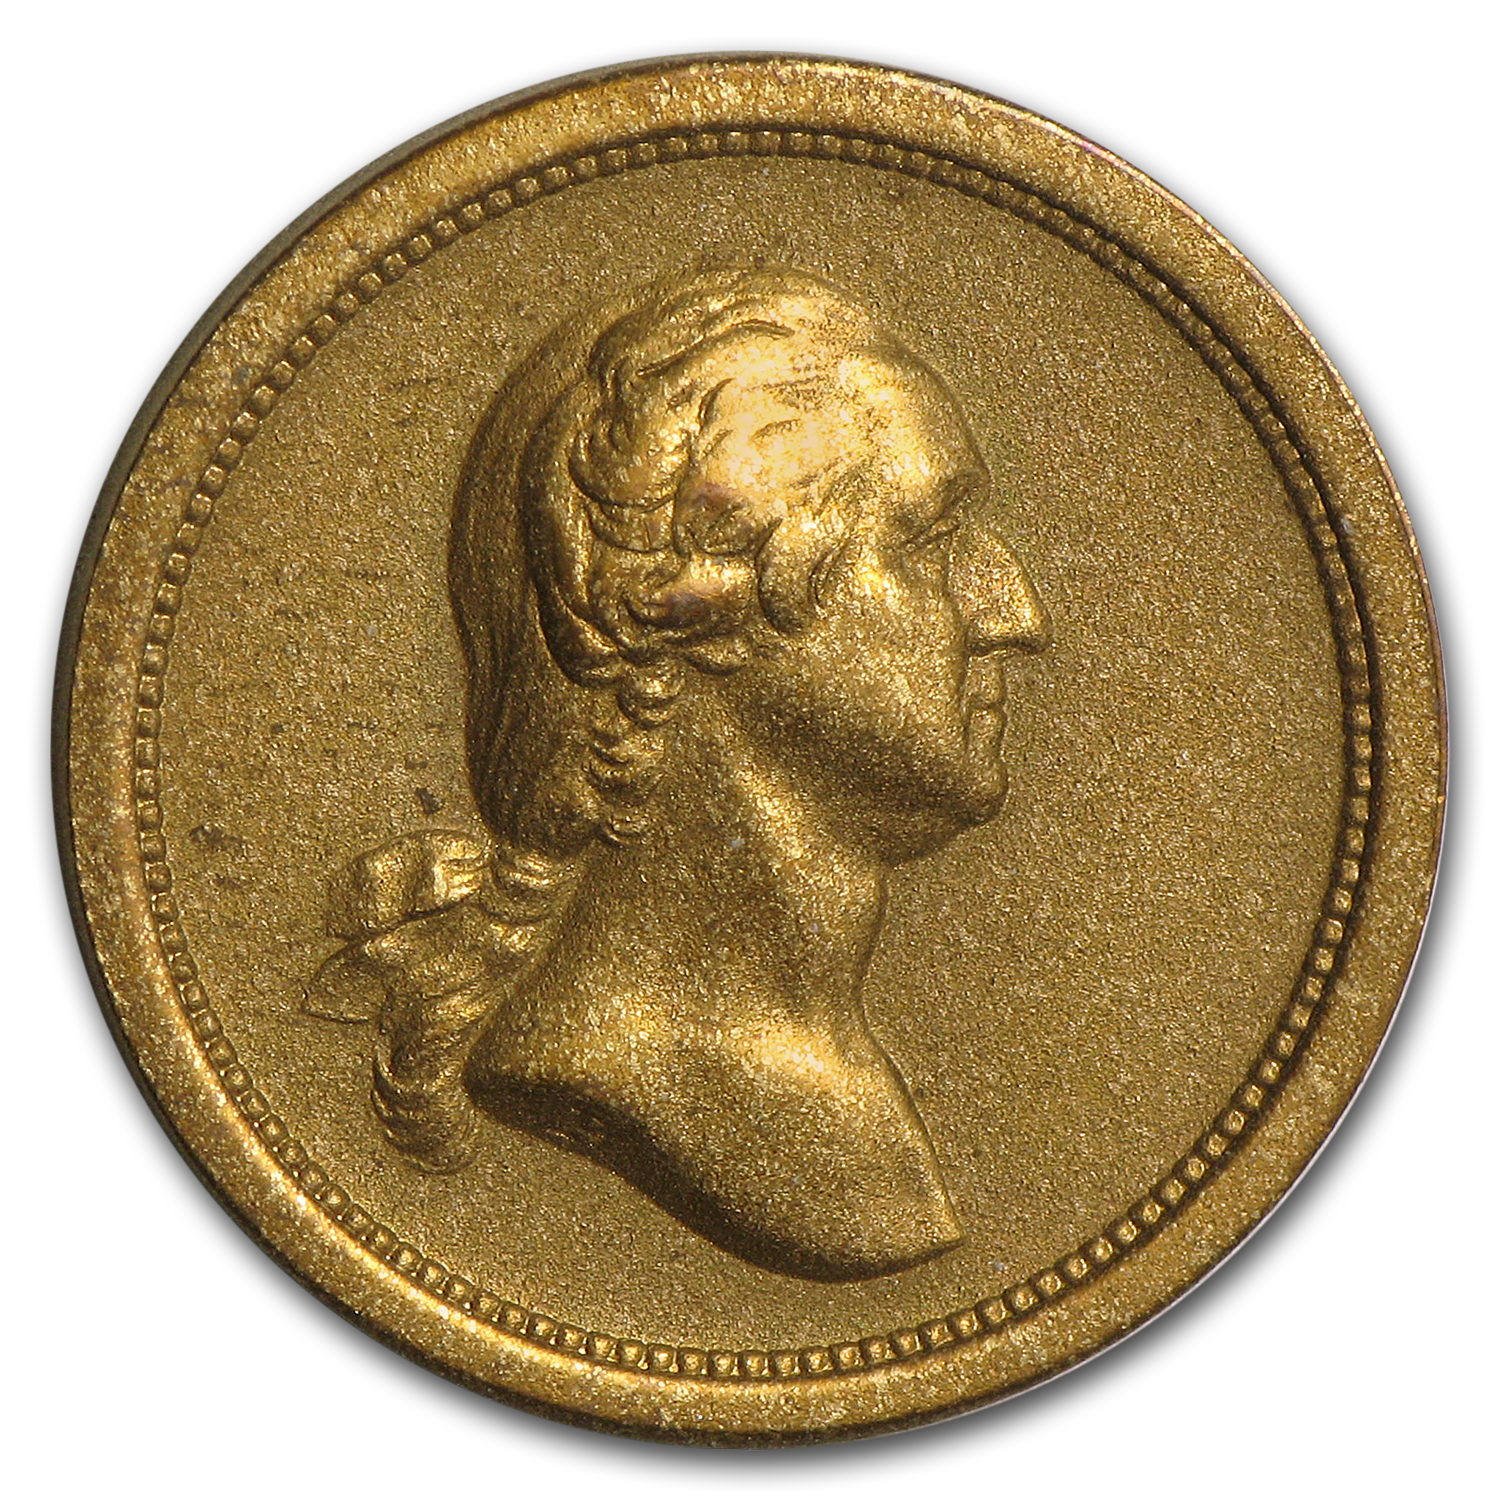 US Mint Medal Washington & Jackson